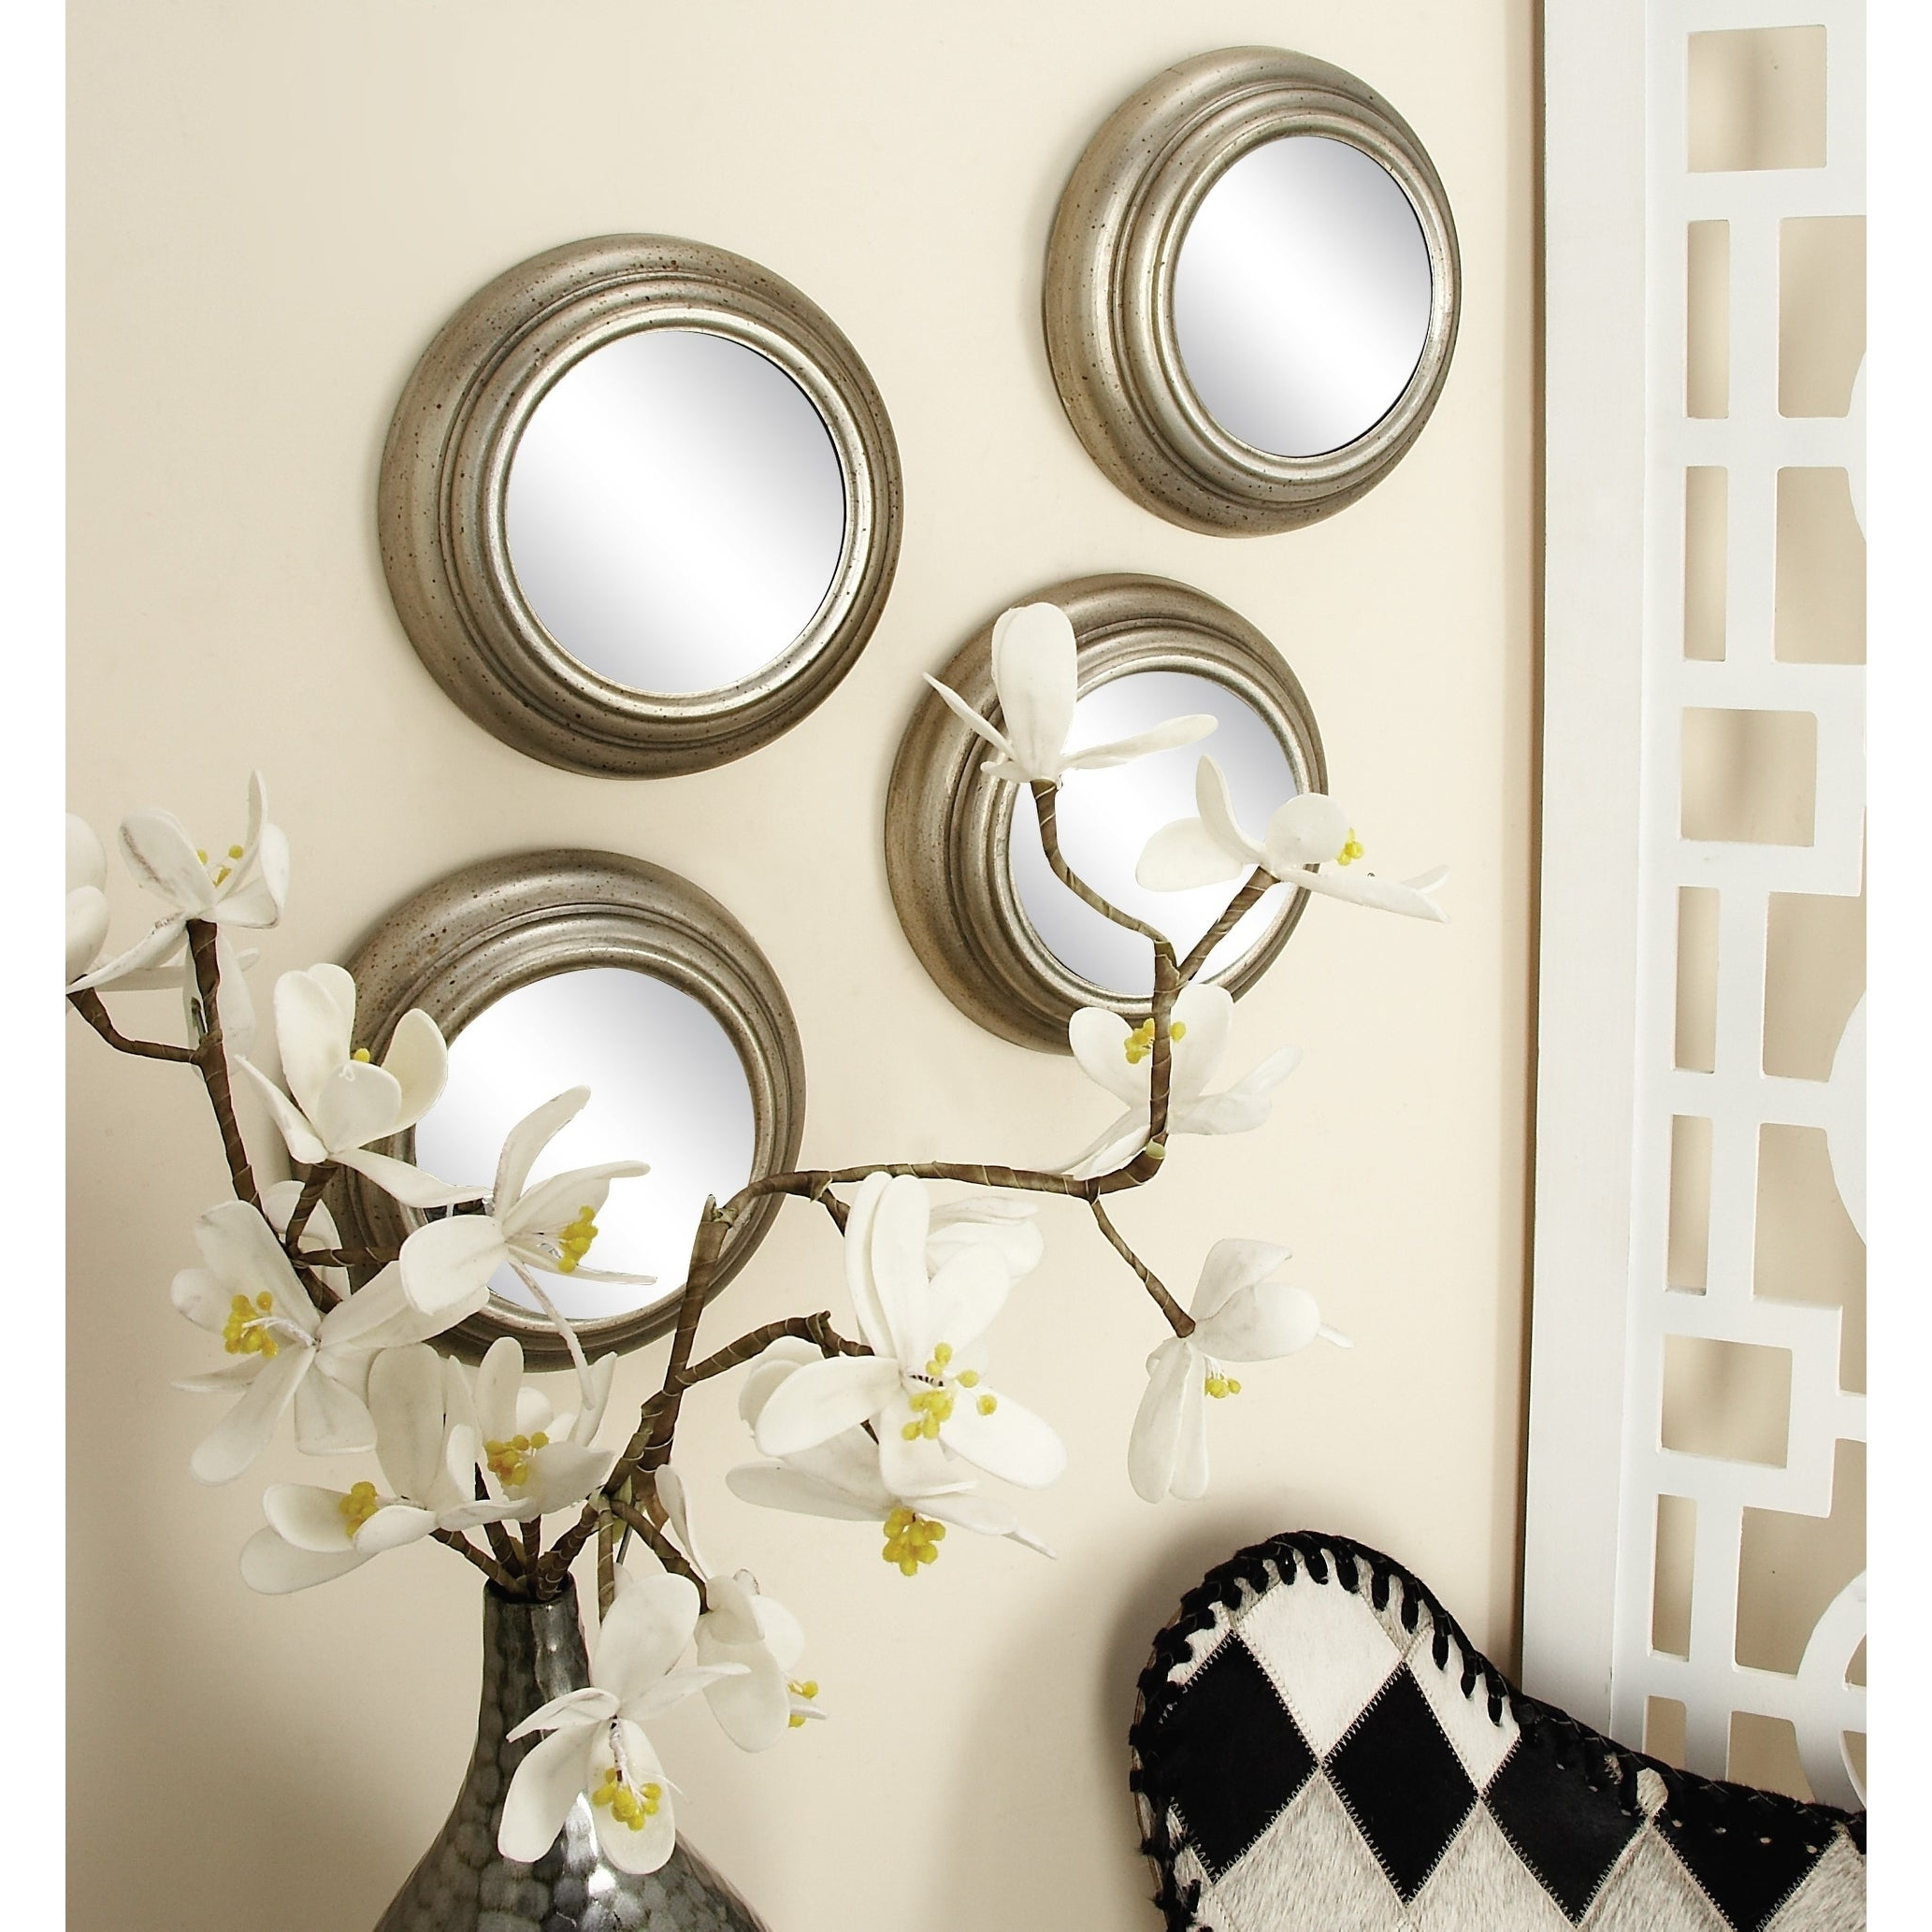 Decorative Contemporary Wall Mirrors Within Favorite Set Of 12 Contemporary Round Decorative Wall Mirrorsstudio 350 – Silver (View 10 of 20)